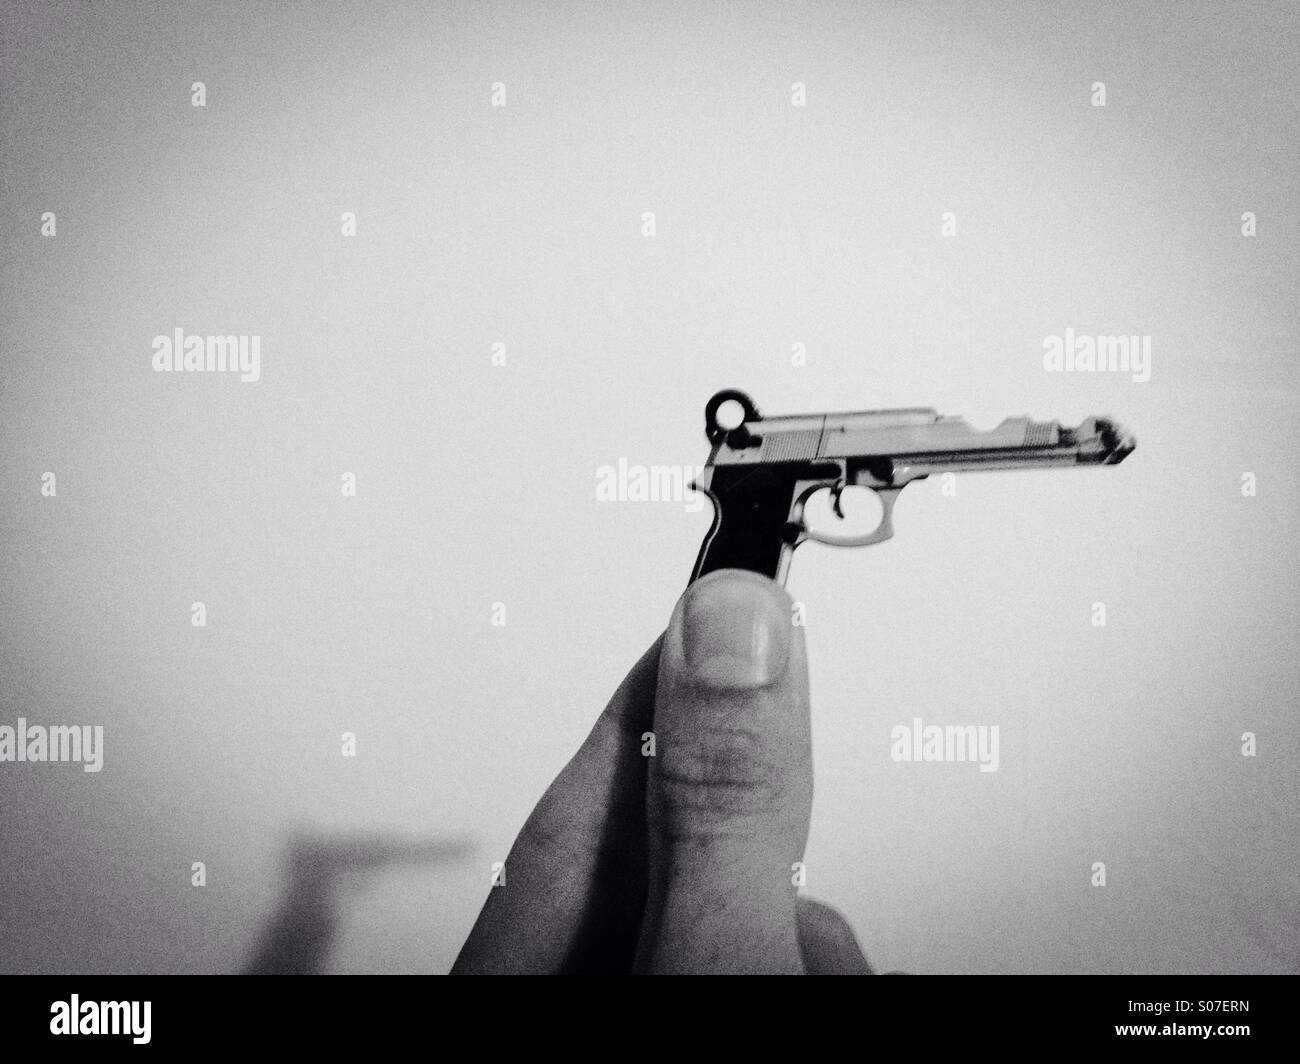 A house key in the shape of a gun - Stock Image